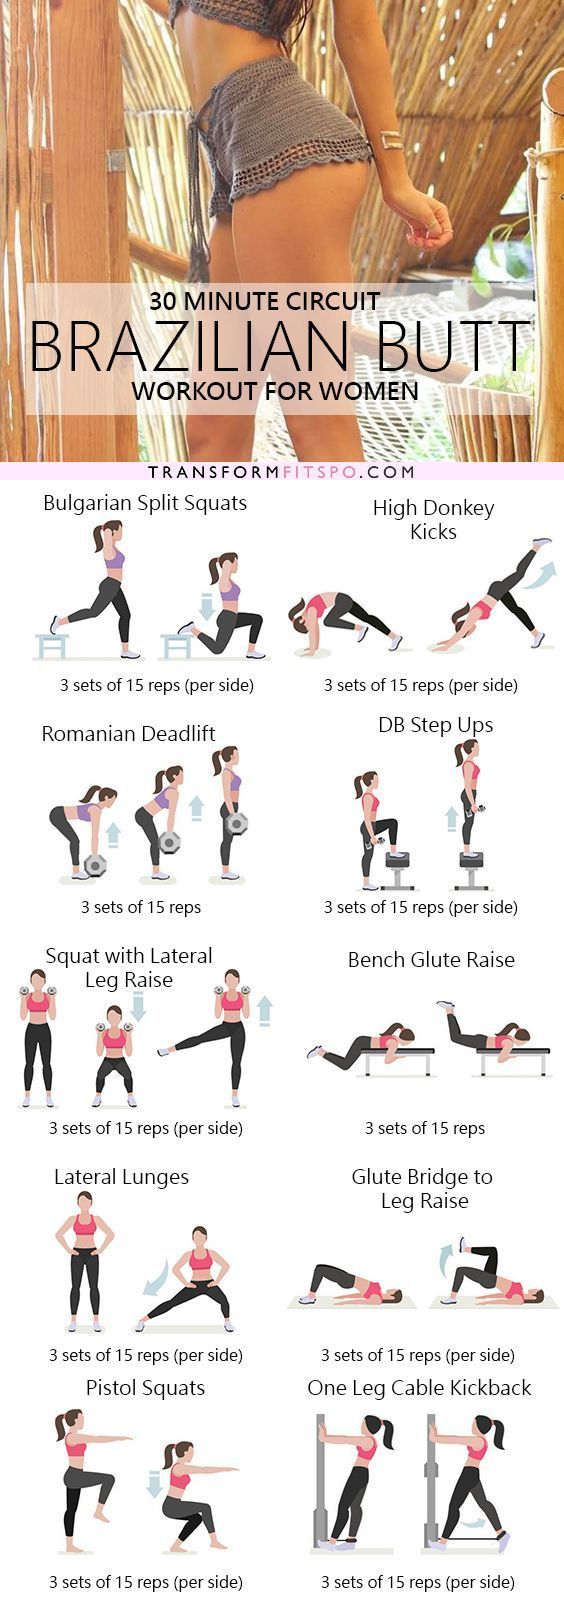 Repin and share if you enjoyed this killer booty workout! Follow personal trainer at Pinterest.com/SuperDFitness now!